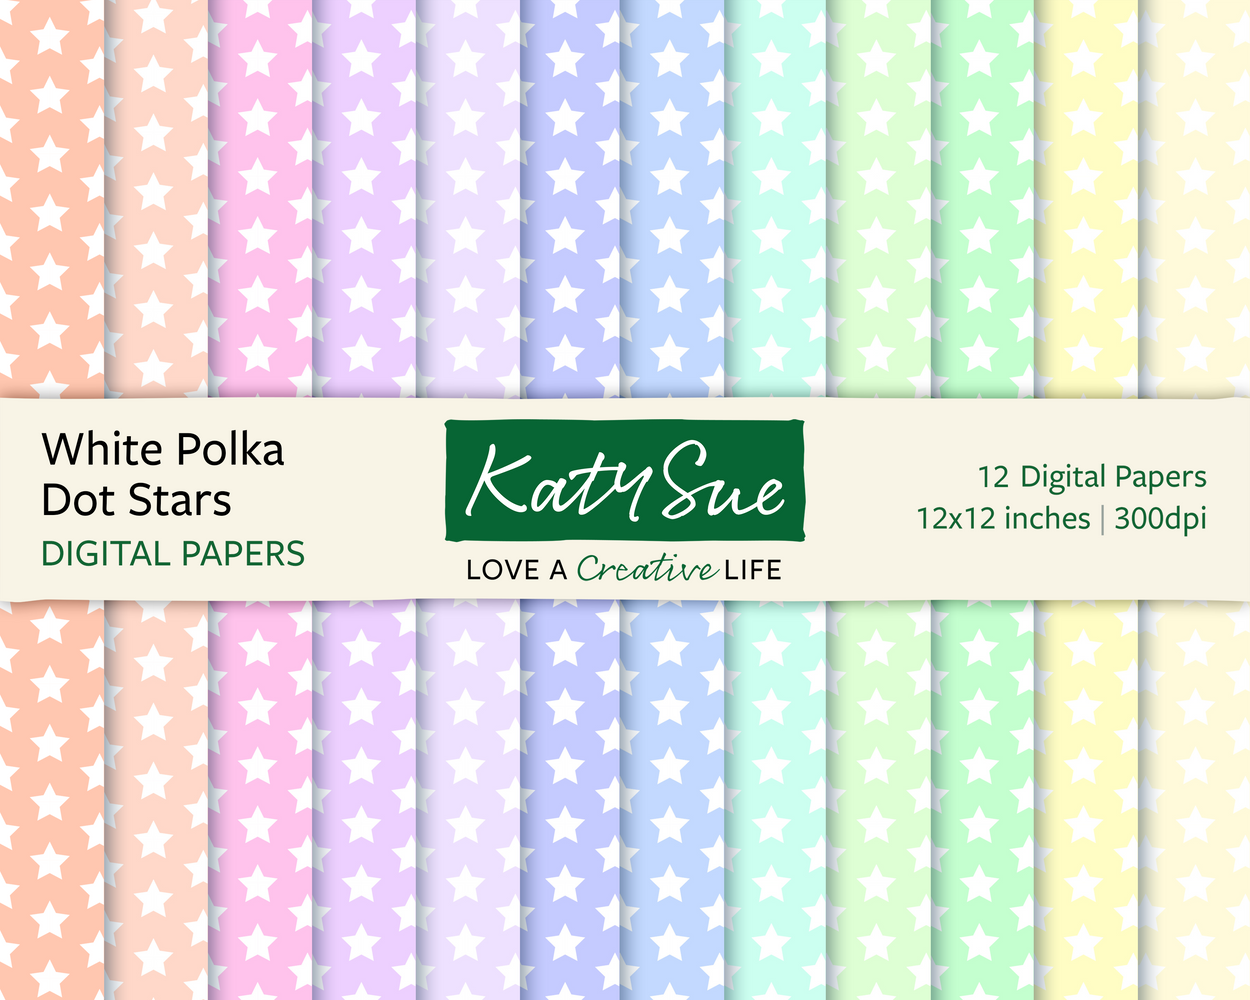 White Polka Dot Stars | 12x12 Digital Papers